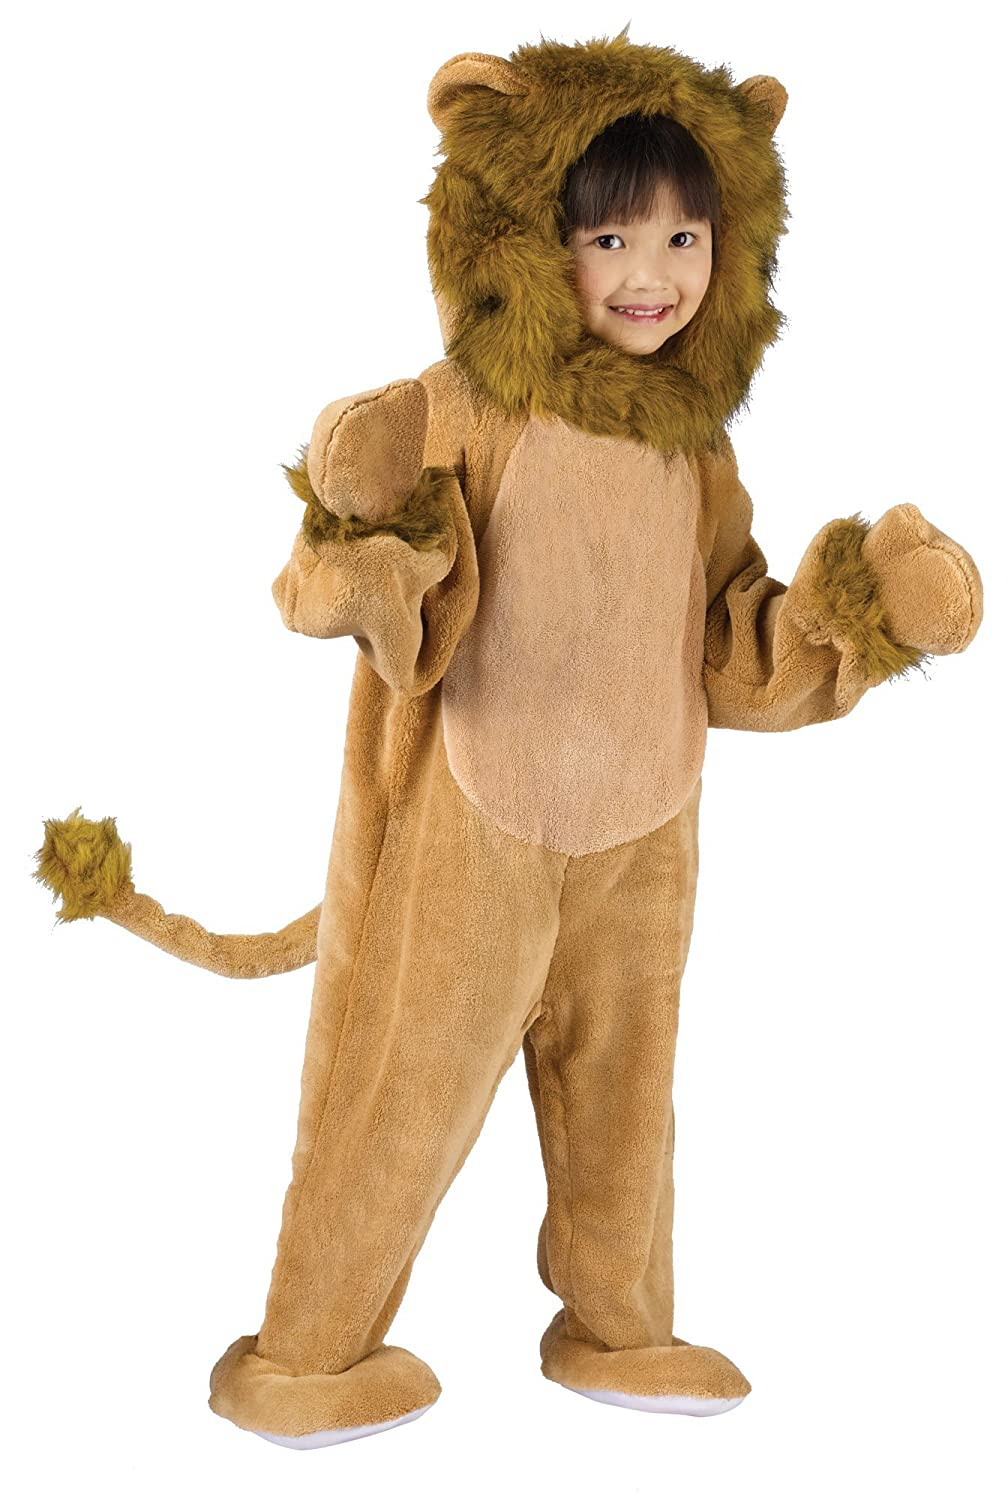 Fun World Costumes Baby's Cuddly Lion Toddler Costume Tan Toddler Large 3T-4T FunWorld 116911